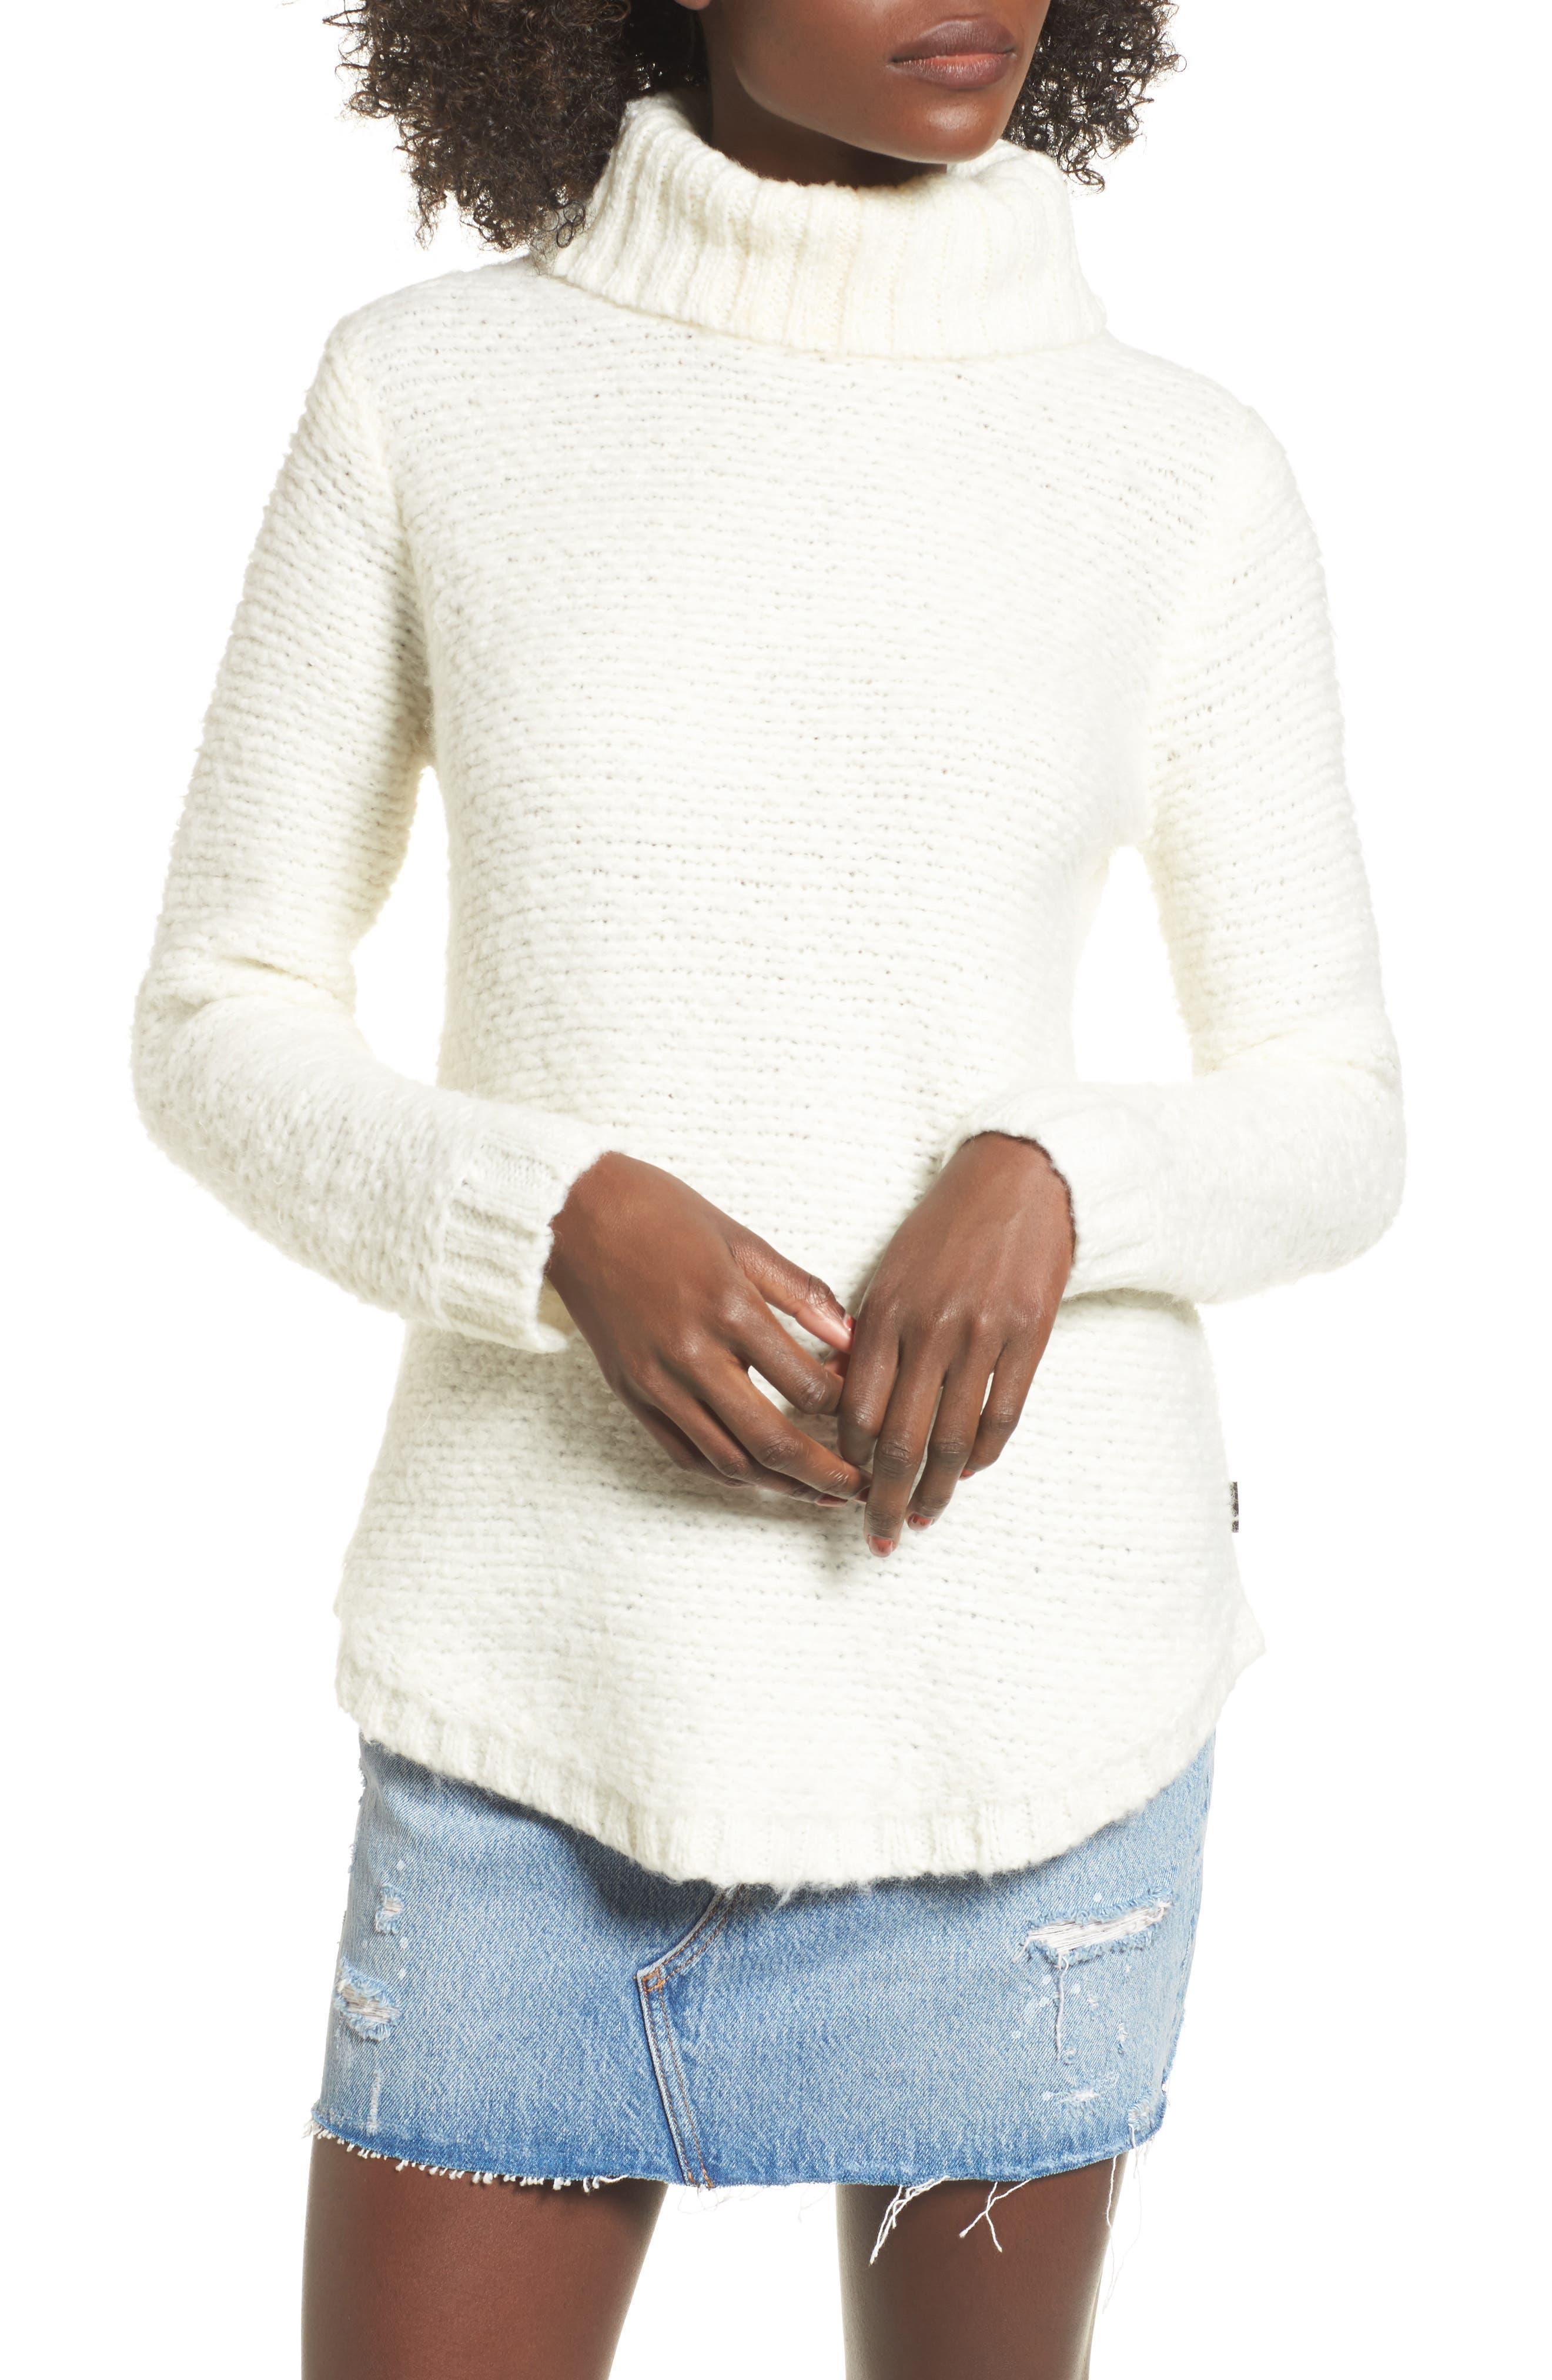 Kinks Turtleneck Sweater,                             Main thumbnail 1, color,                             Vintage White